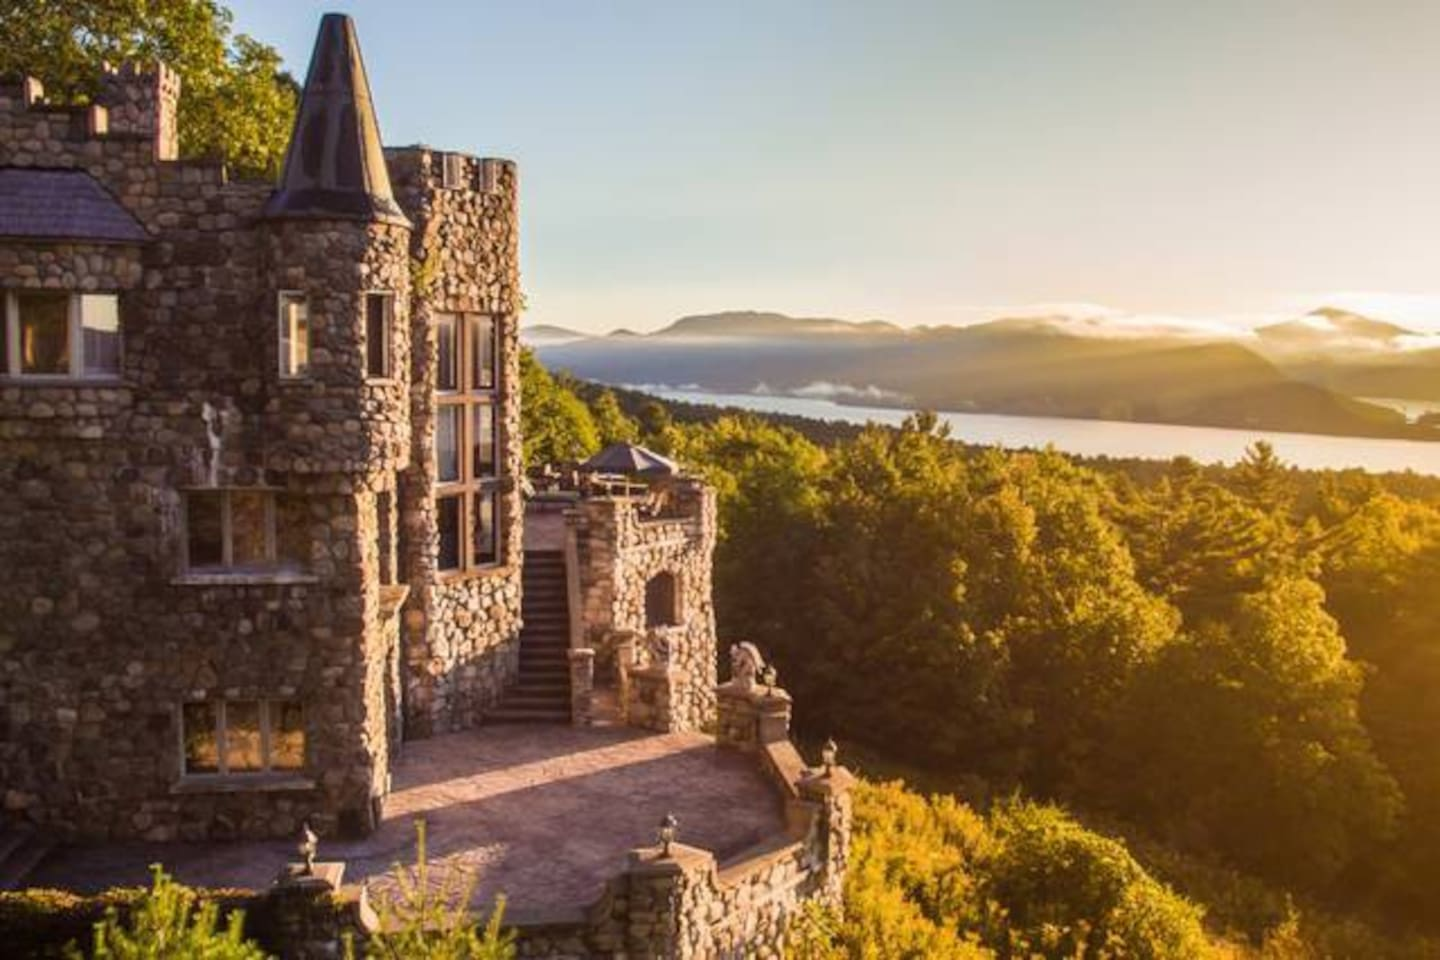 'The Royal Bedroom' in Highlands Castle has a magnificent view of Lake George and the Adirondack Mountains.